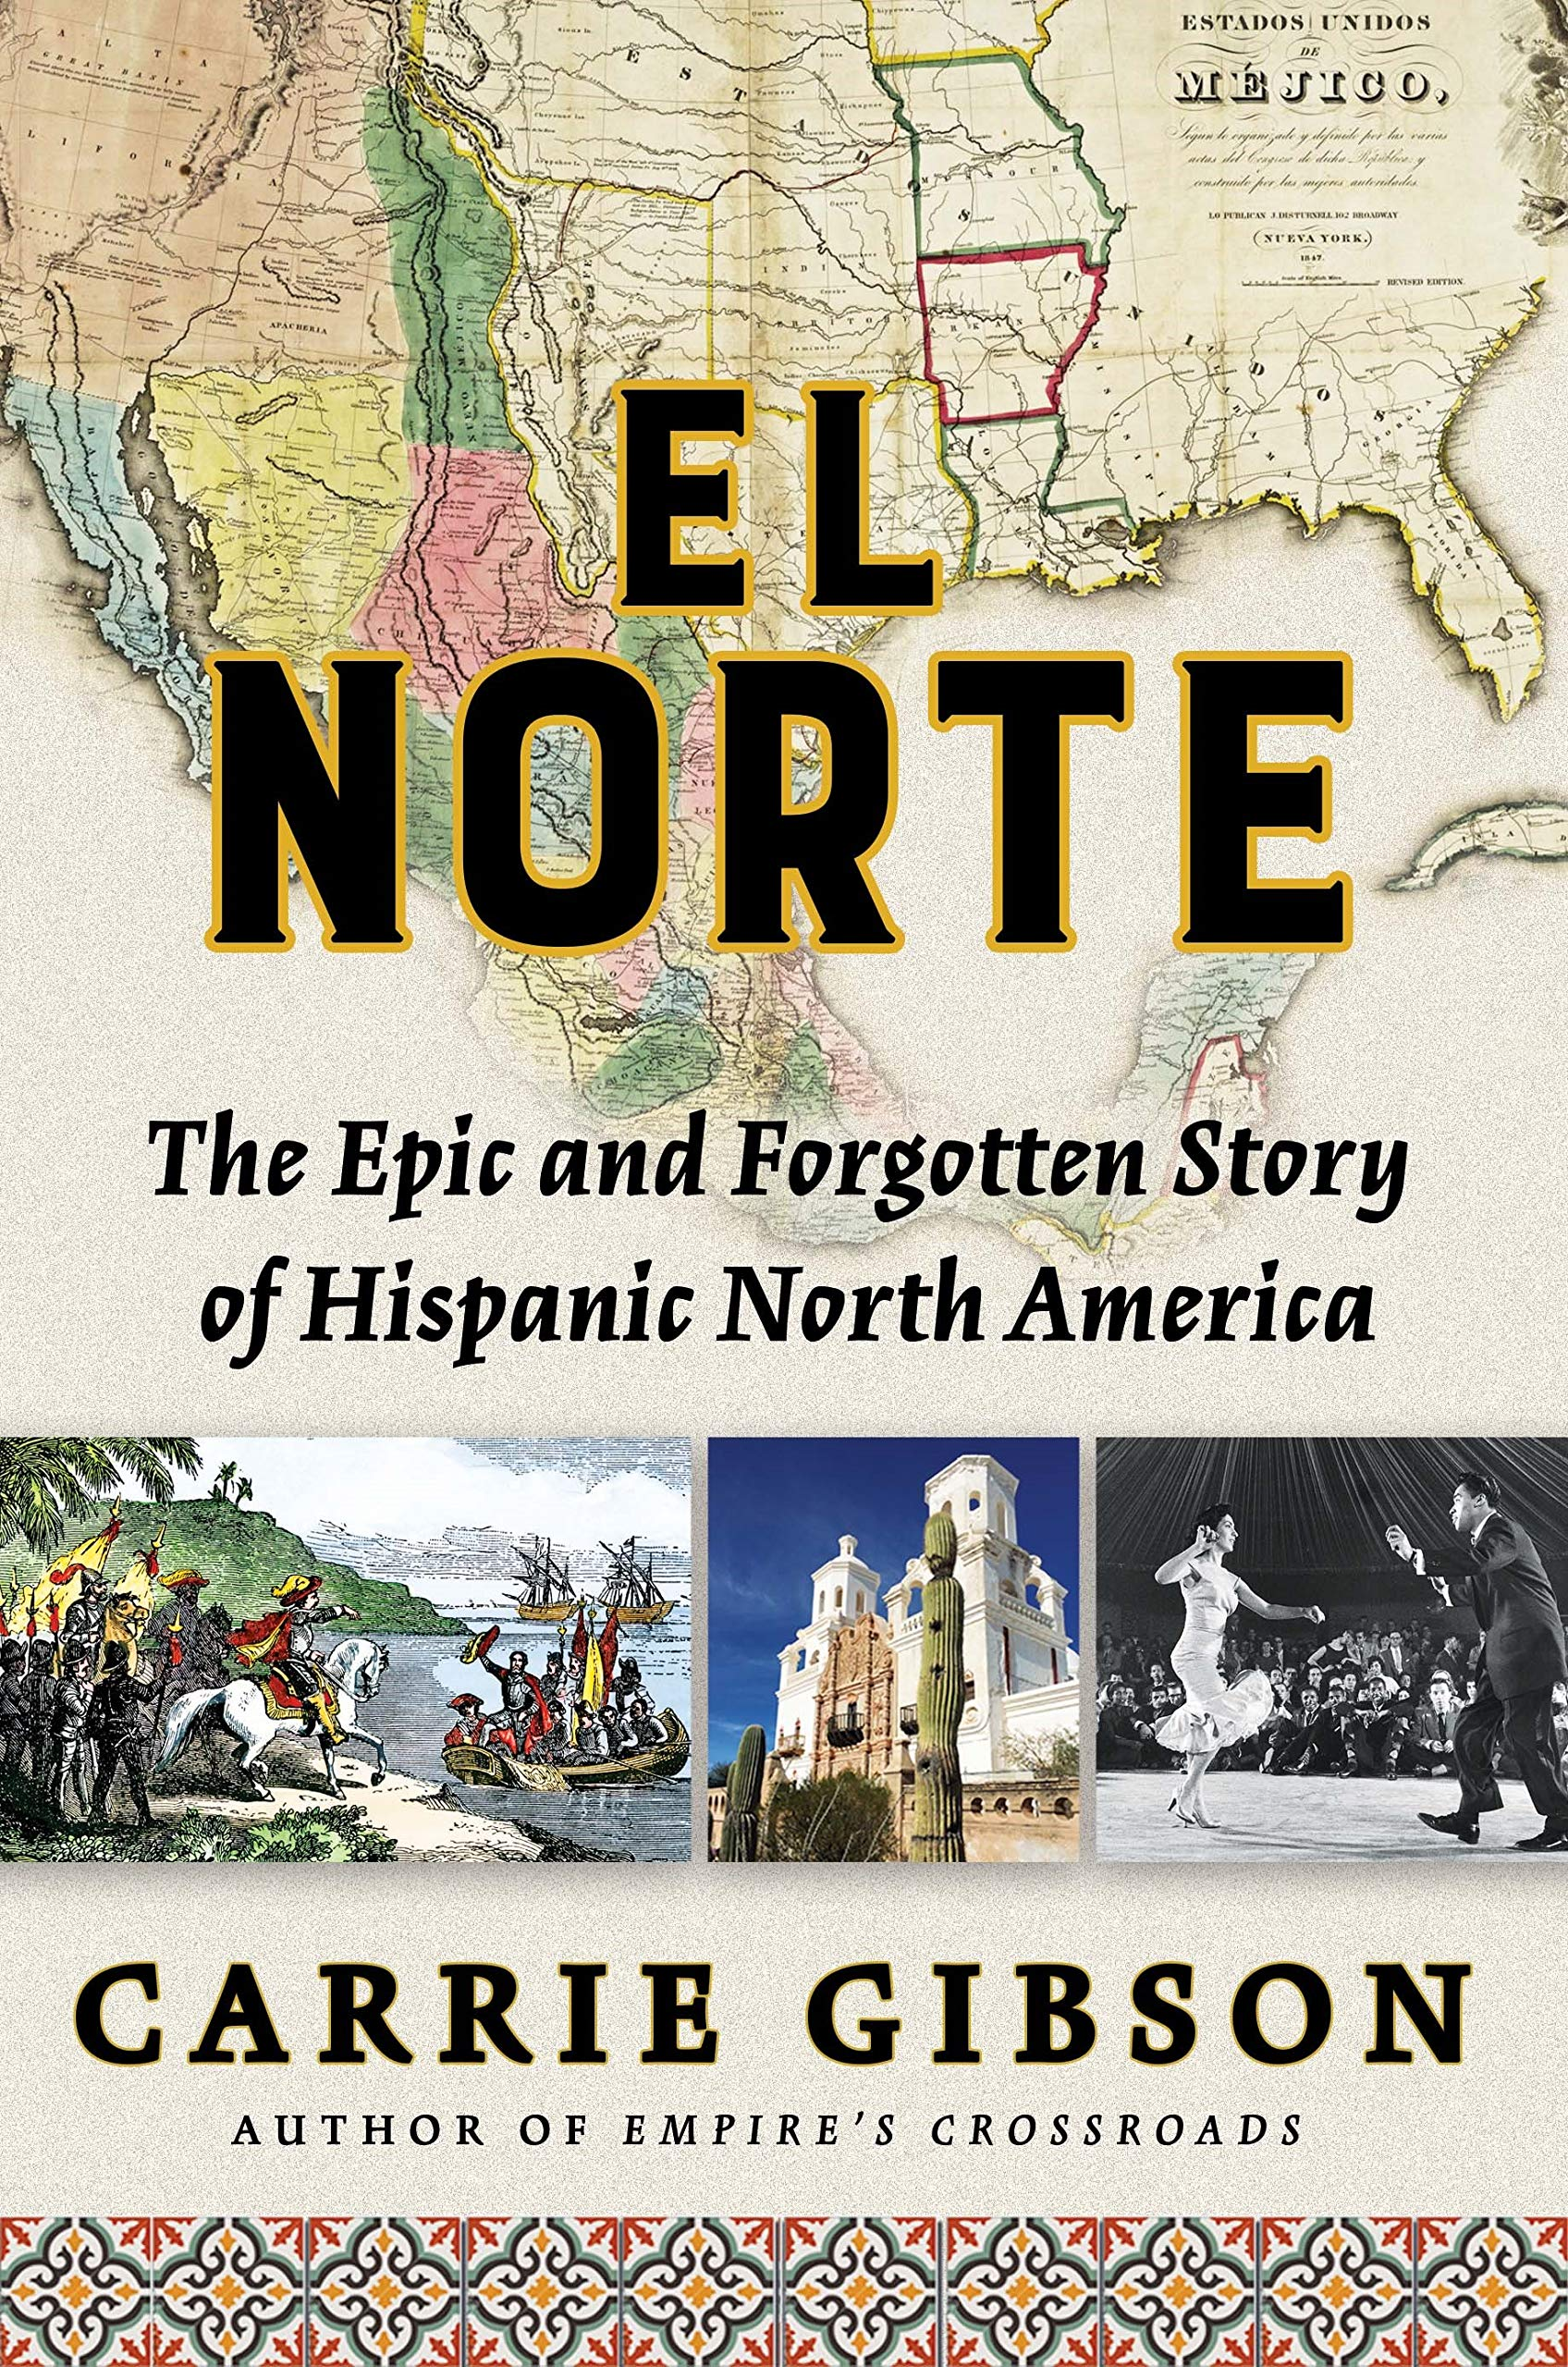 El Norte: The Epic and Forgotten Story of Hispanic North America